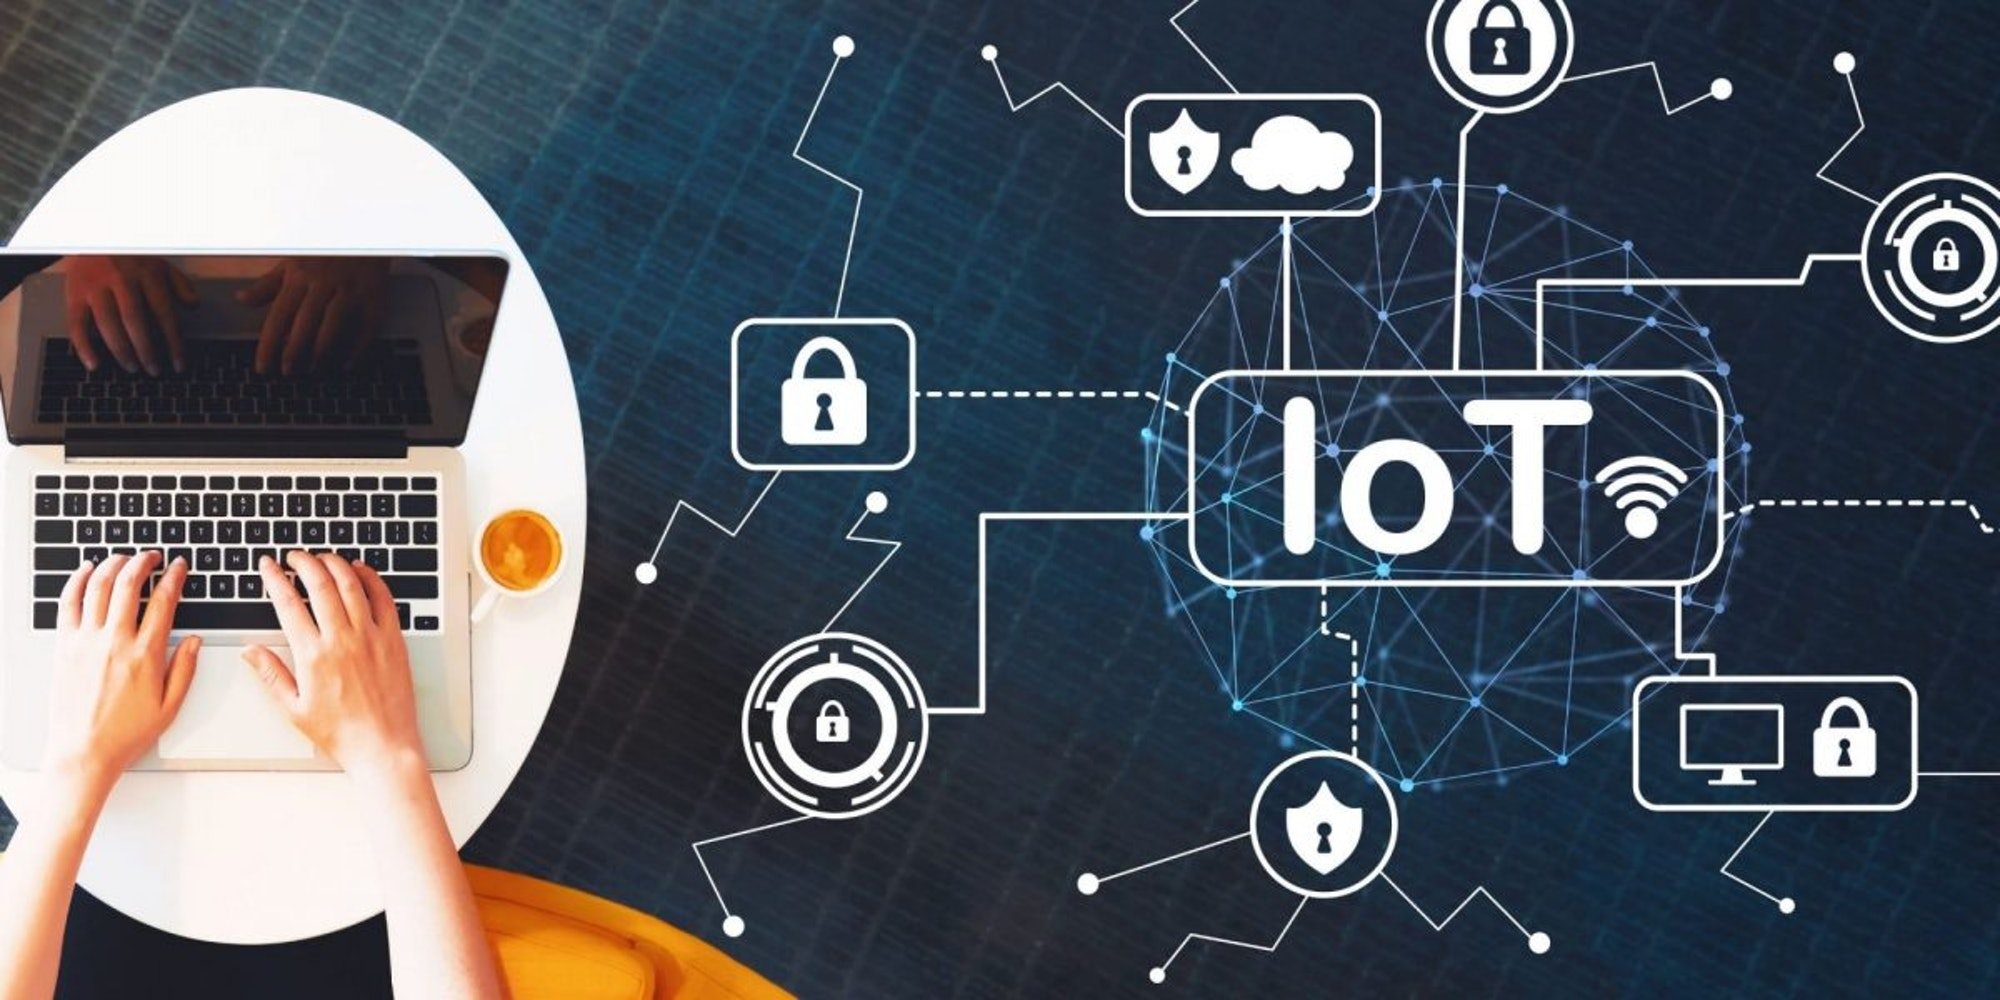 Cover Image for Internet of Things (IoT) Course Build Your Own Devices